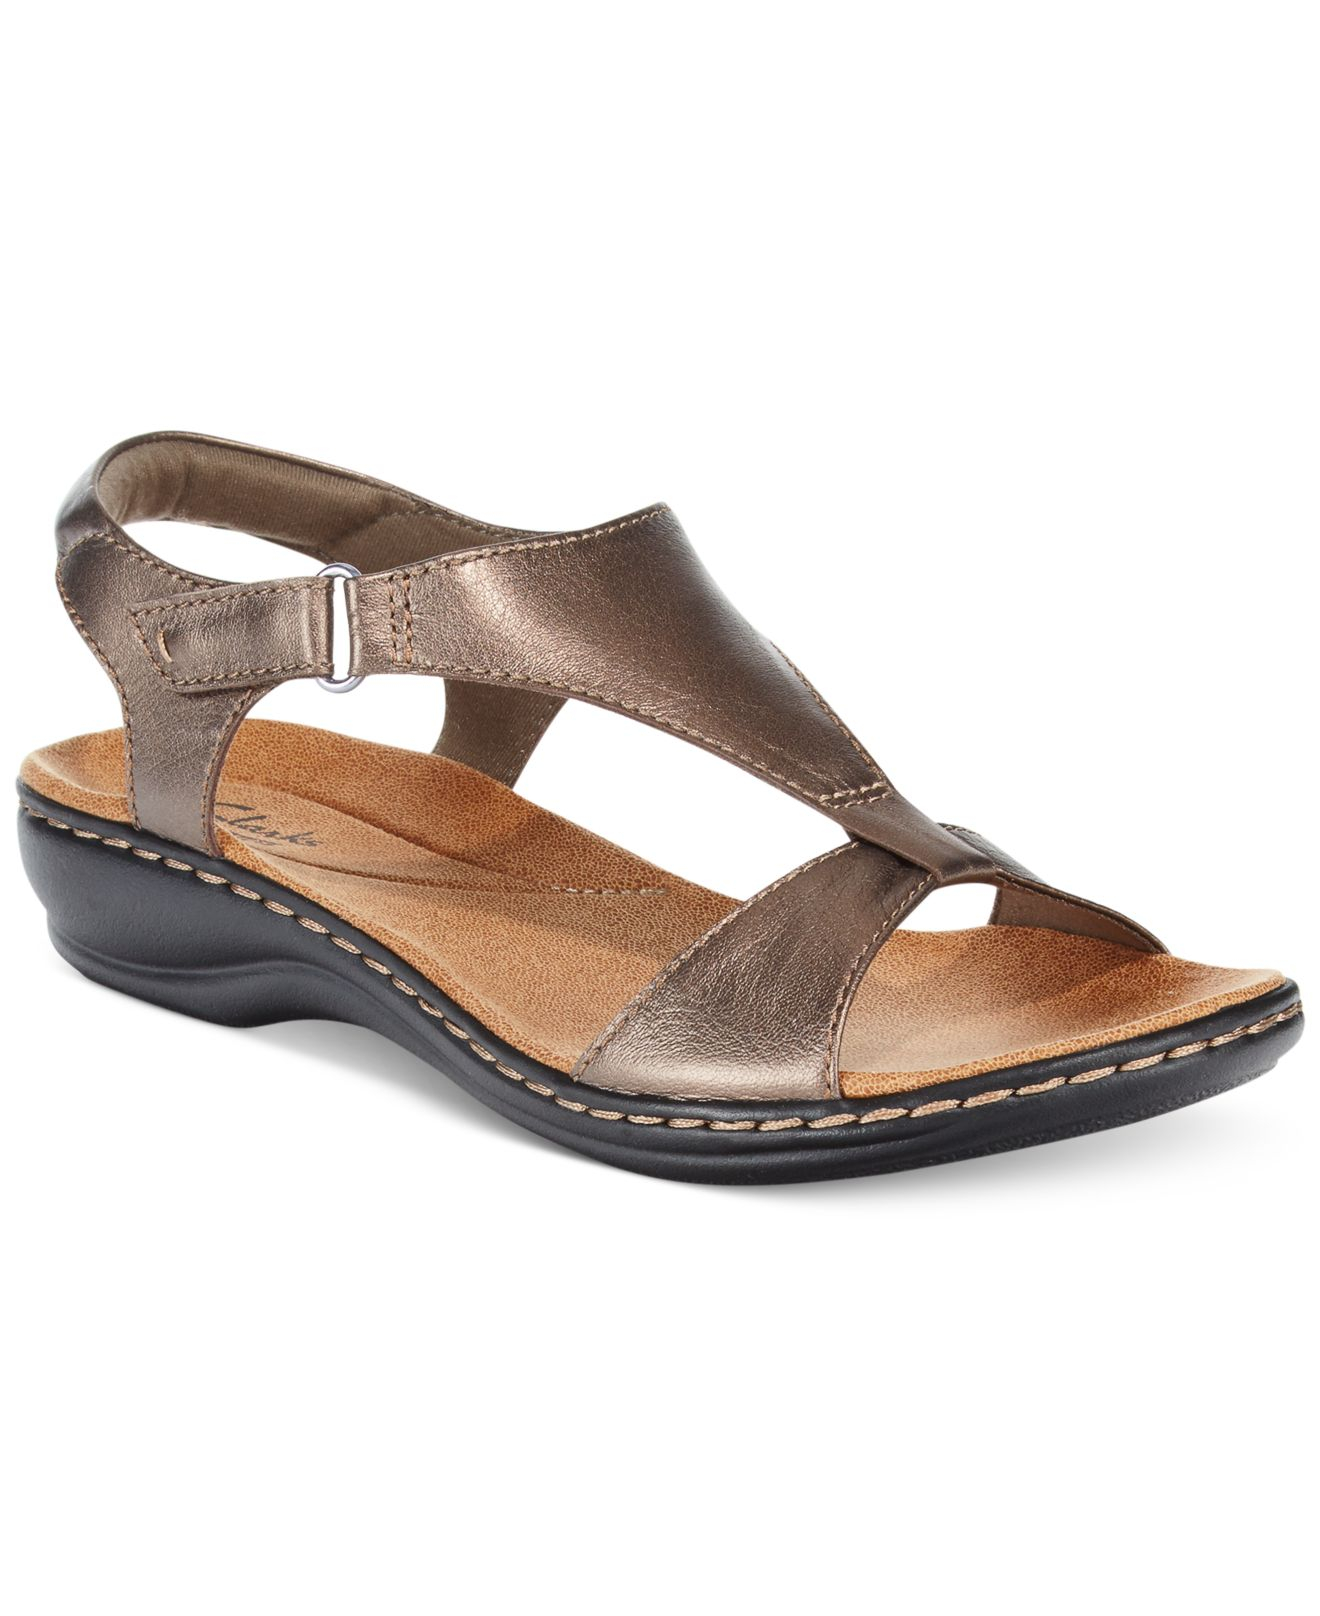 Model Lyst - Clarks Collection Womenu0026#39;s Wendy Estate Two-piece Sandals In Black